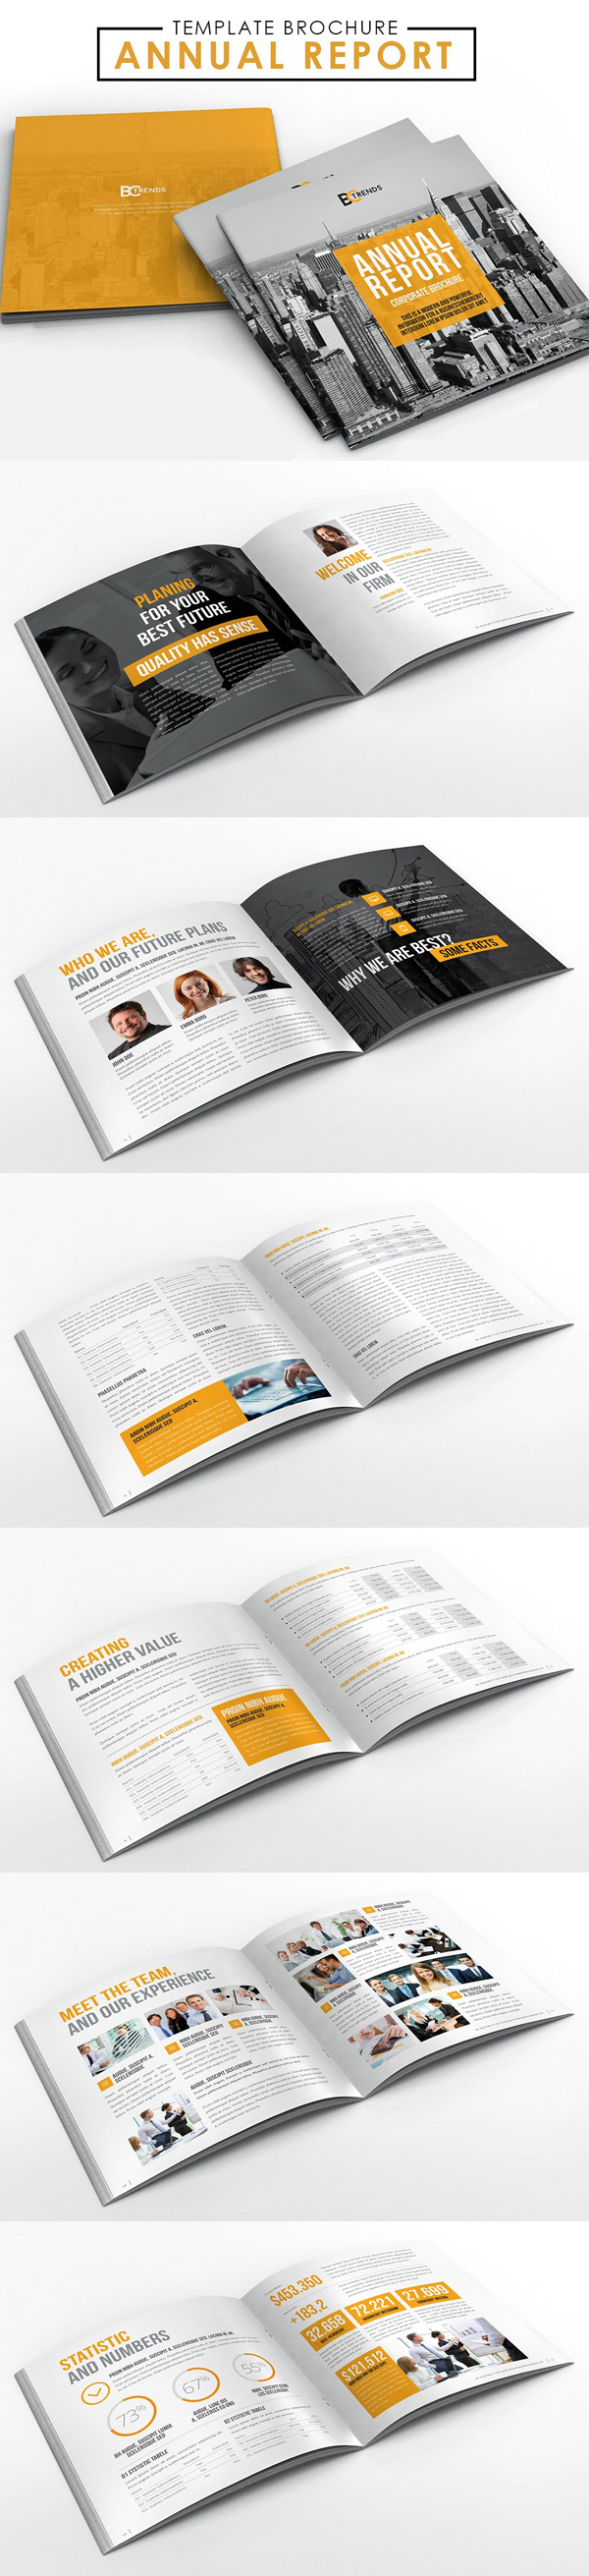 100 Professional Corporate Brochure Templates - 17